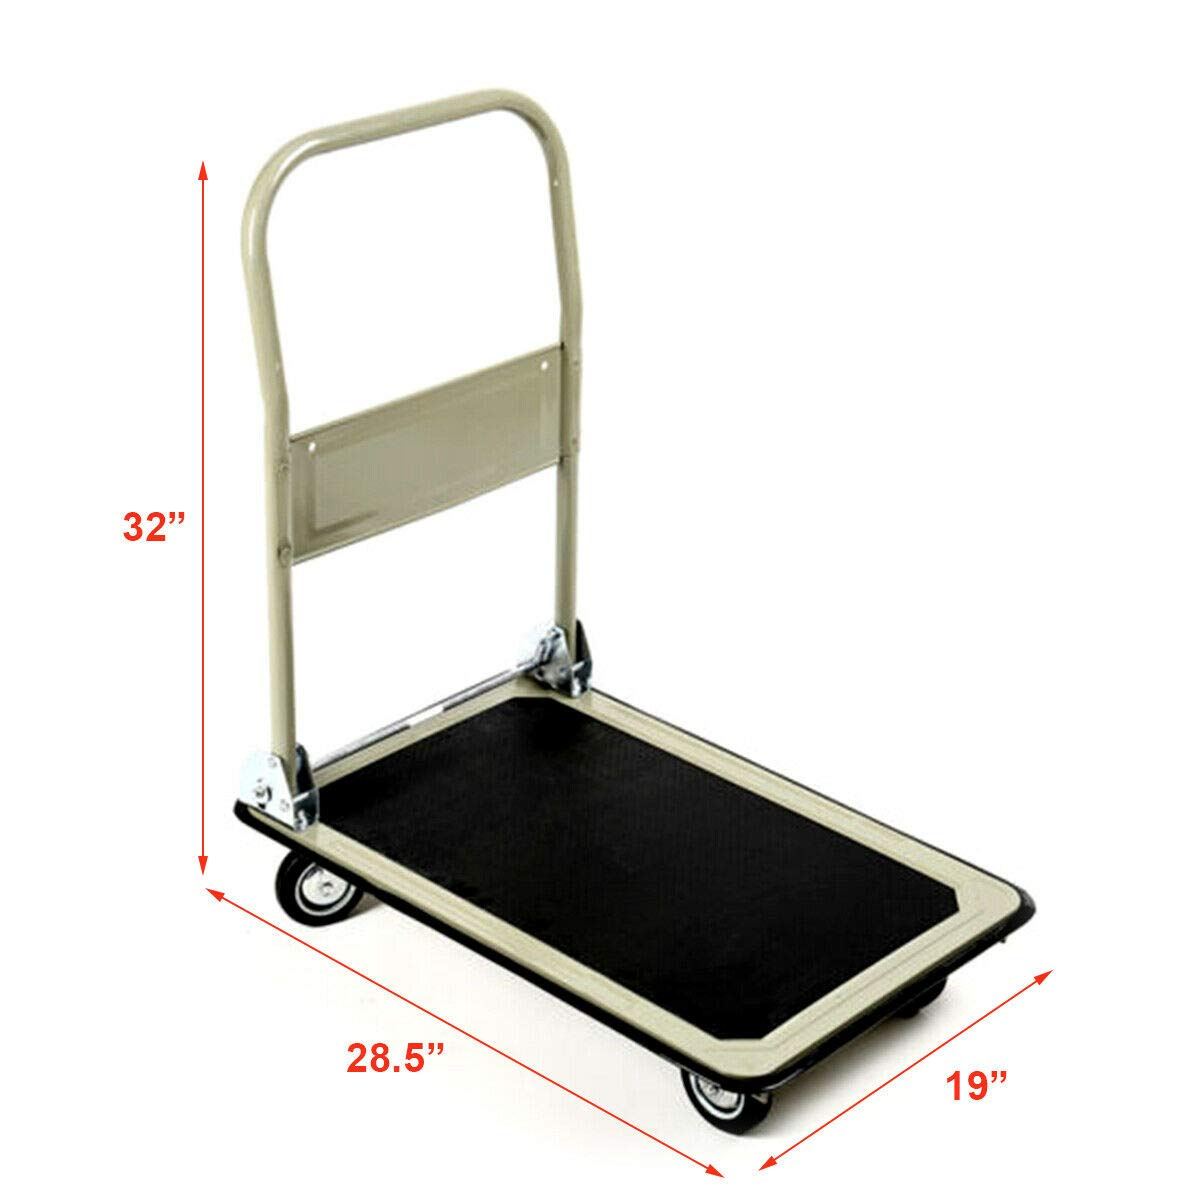 Gray 330lbs Platform Cart Folding Foldable Dolly Push Hand Truck Moving Warehouse Transport Heavy Large Loads(U.S. Stock) by Heize best price (Image #3)